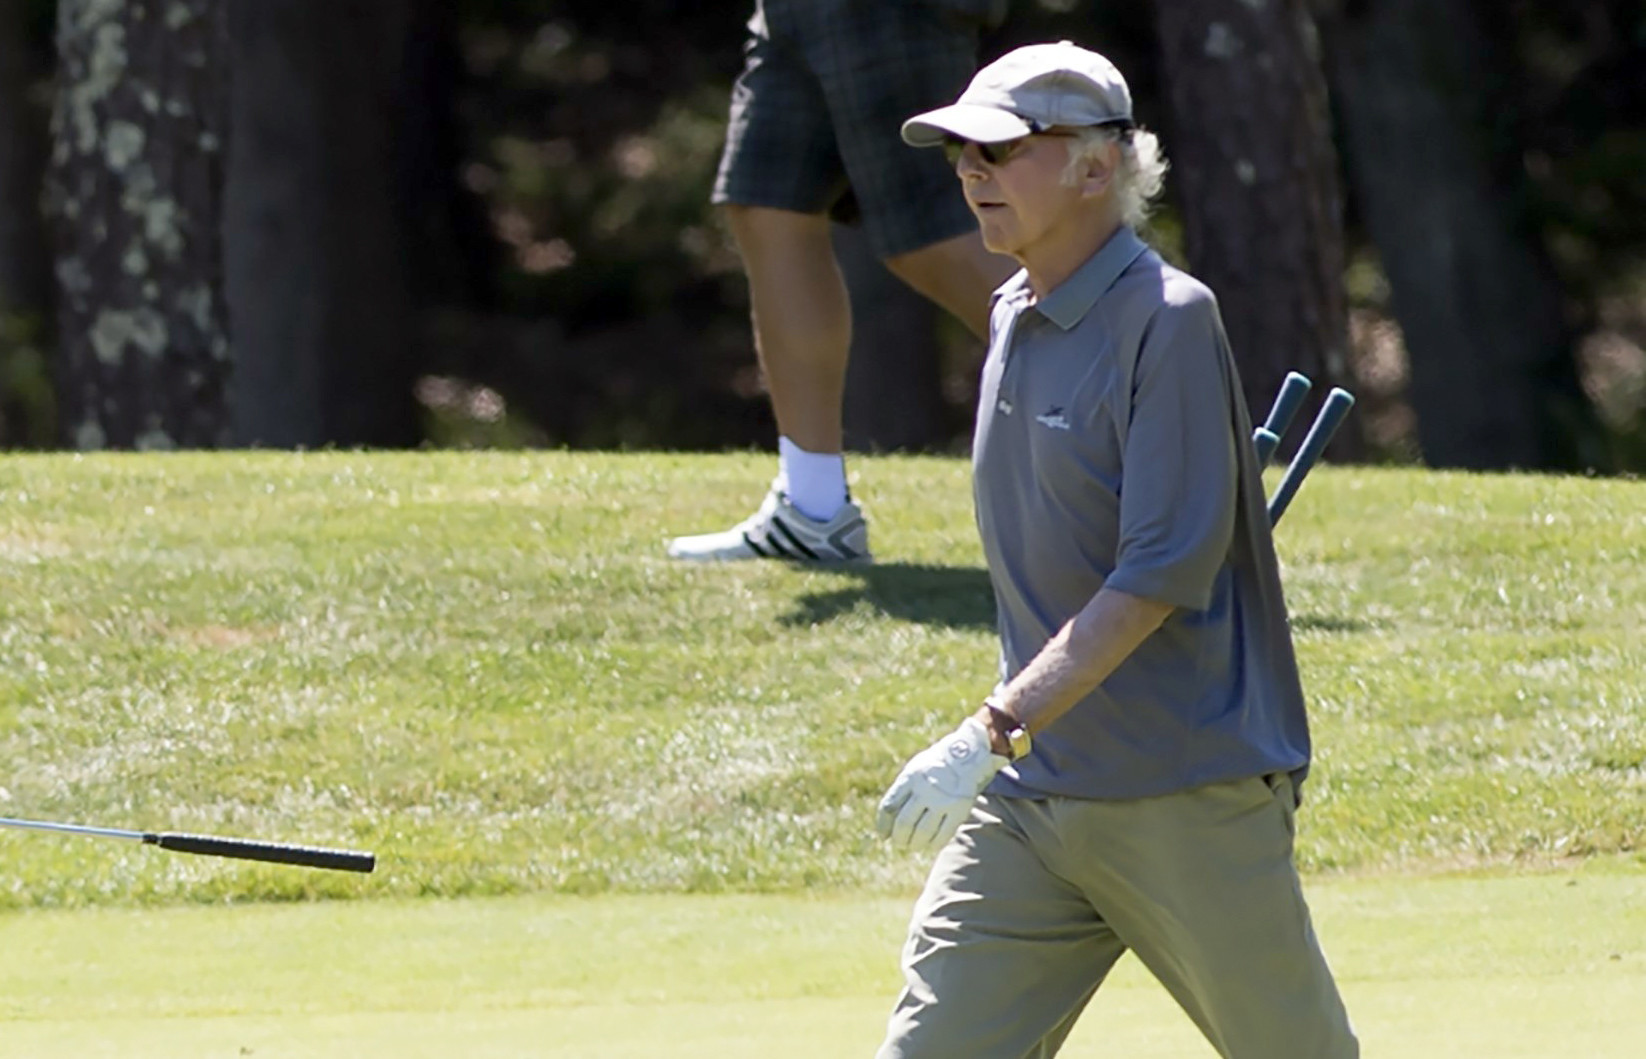 Larry David starts GoFundMe for caddies at his country club affected by coronavirus pandemic